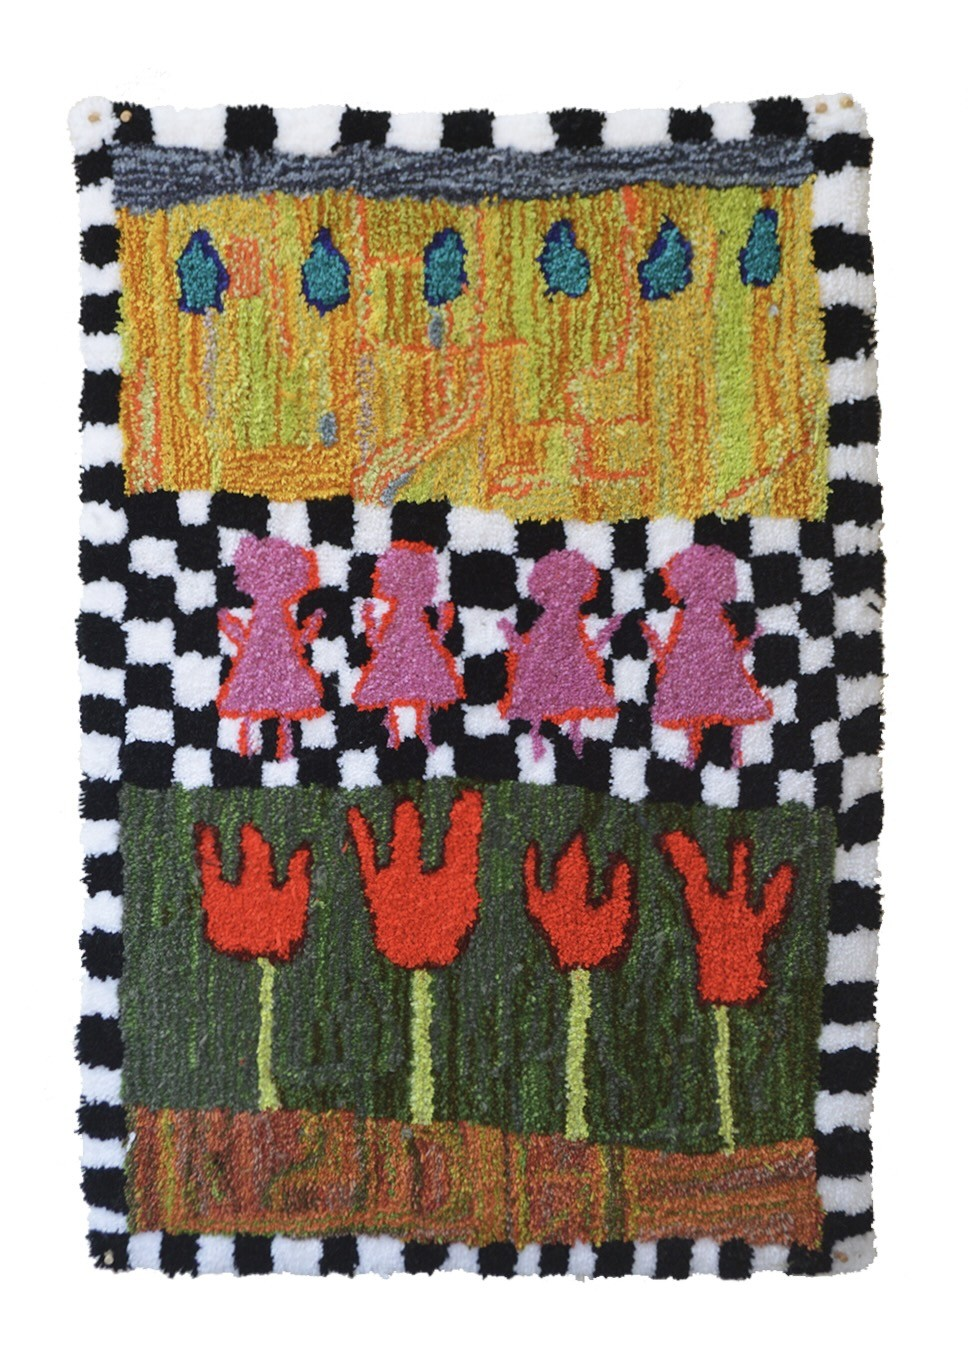 A shag carpet with a black and white checkerboard pattern around the edges of the piece. At the bottom of the rug, four red abstracted tulips sprout from a deep green field. Atop the tulips, against a black and white checkerboard, are four simplified huma